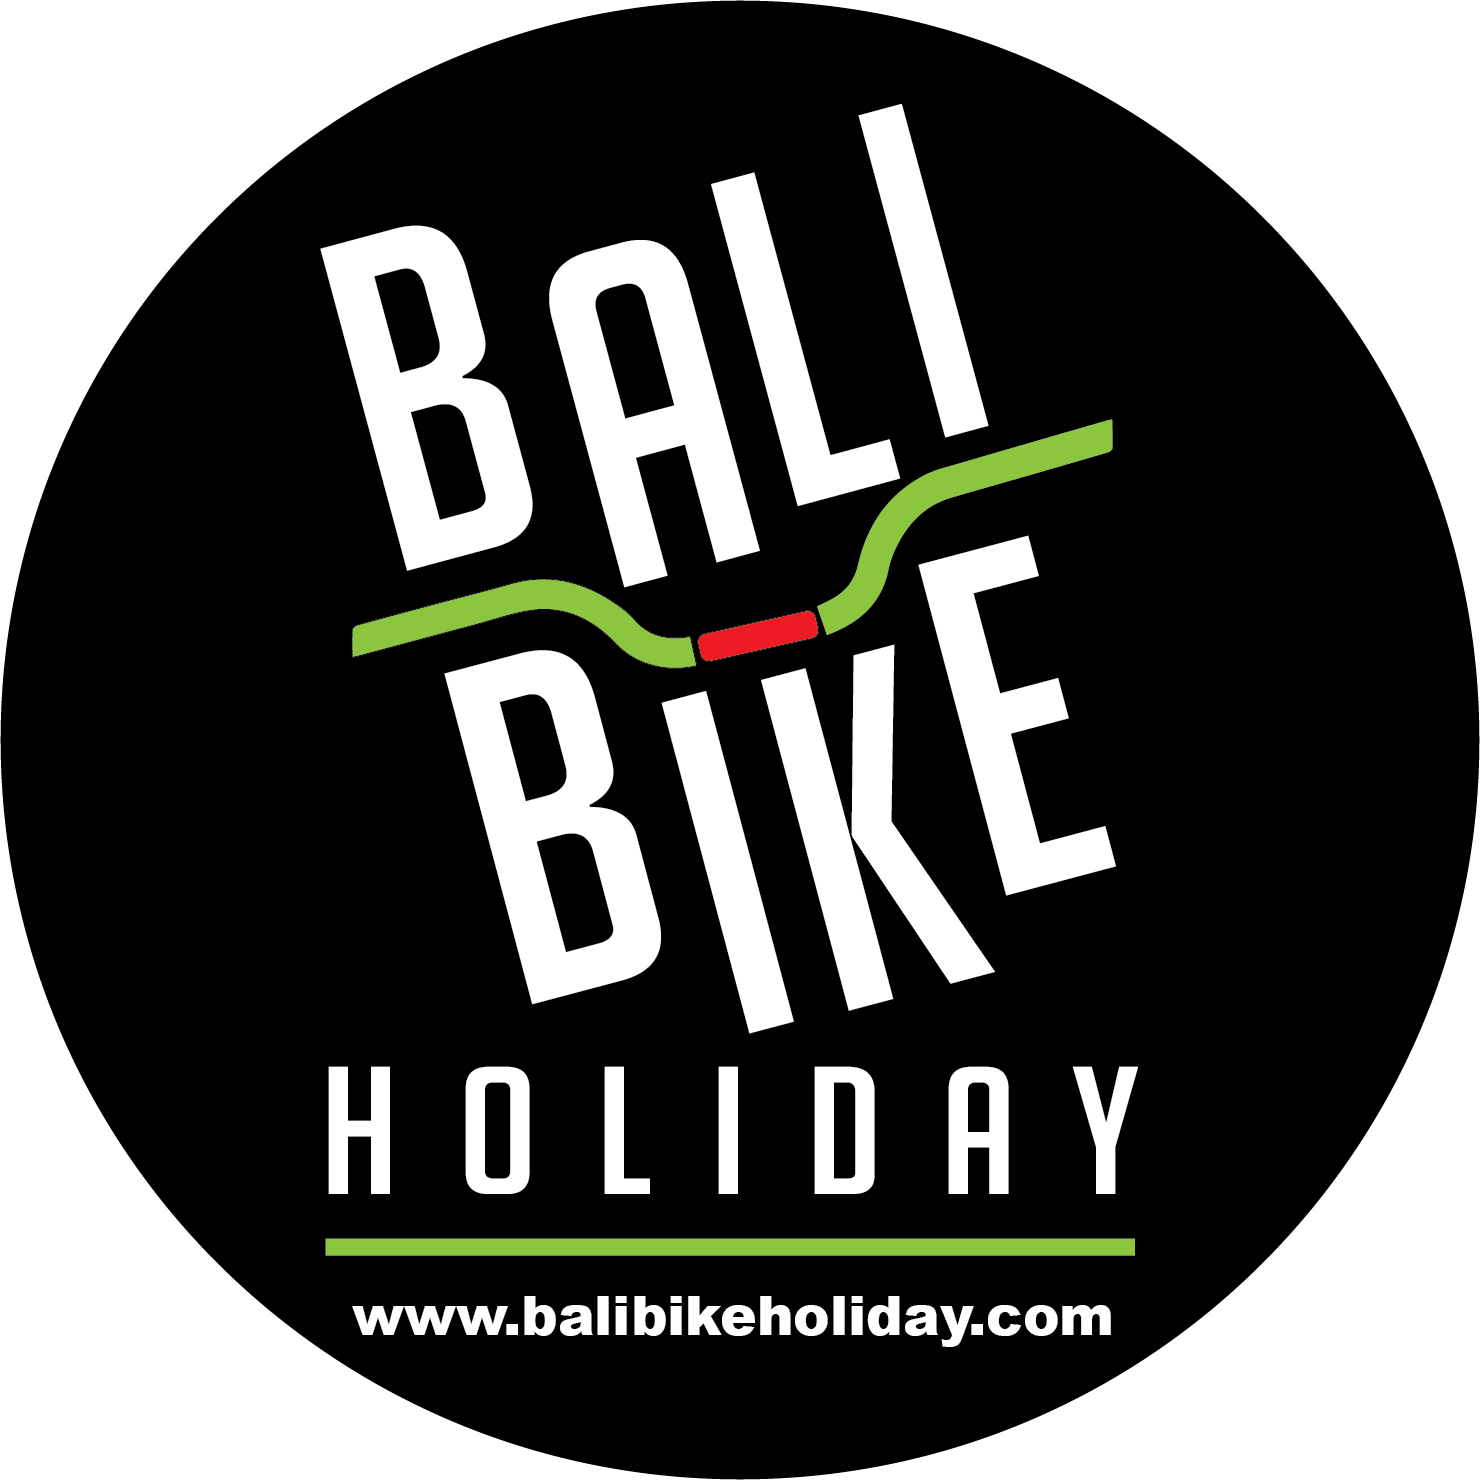 Bali Bike Holiday